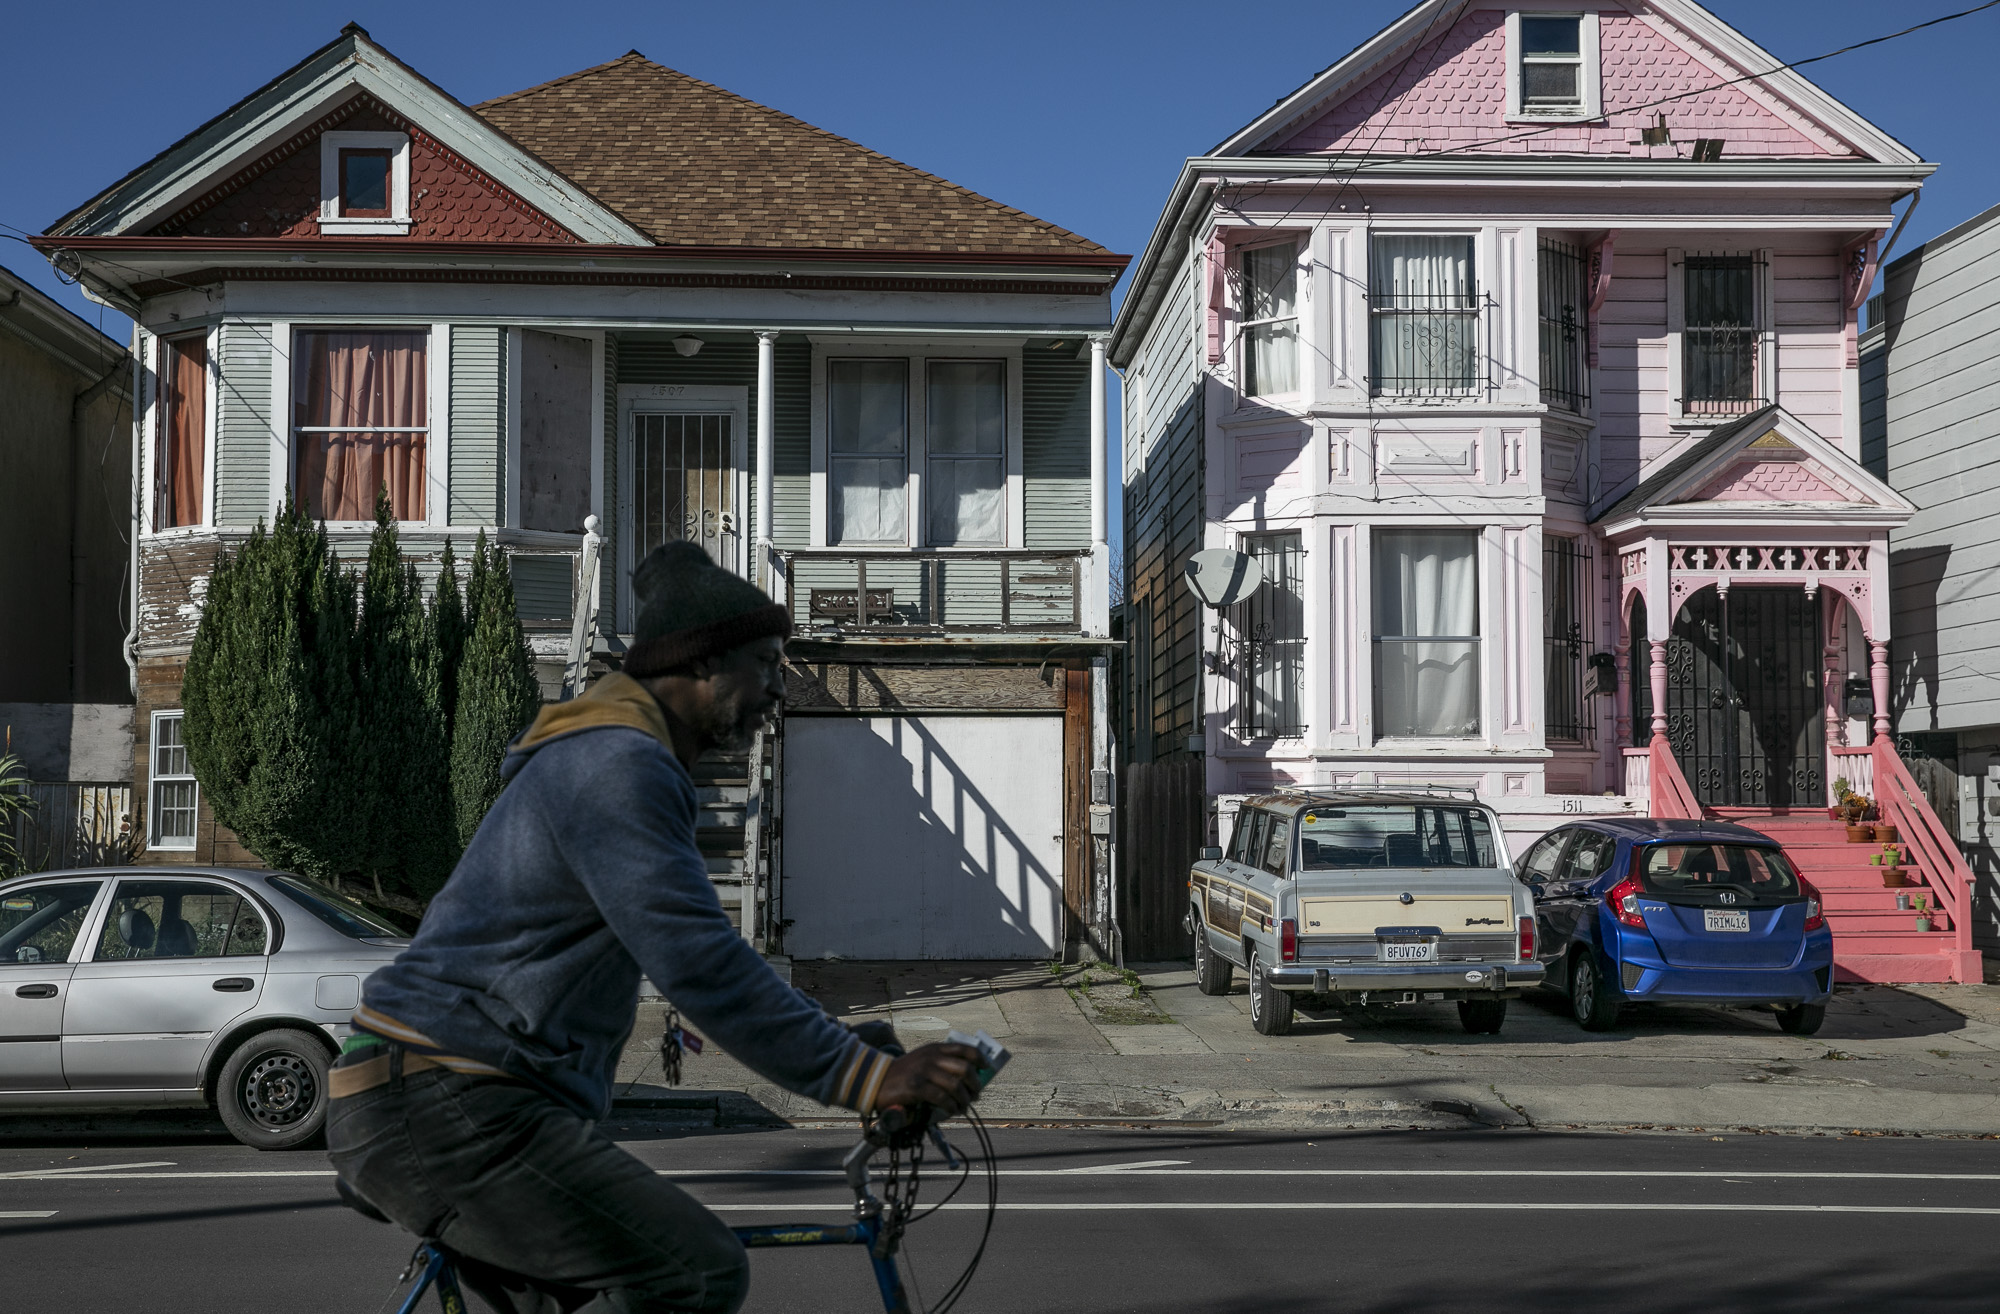 Homes in West Oakland on December 15, 2019. Photo by Anne Wernikoff for CalMatters